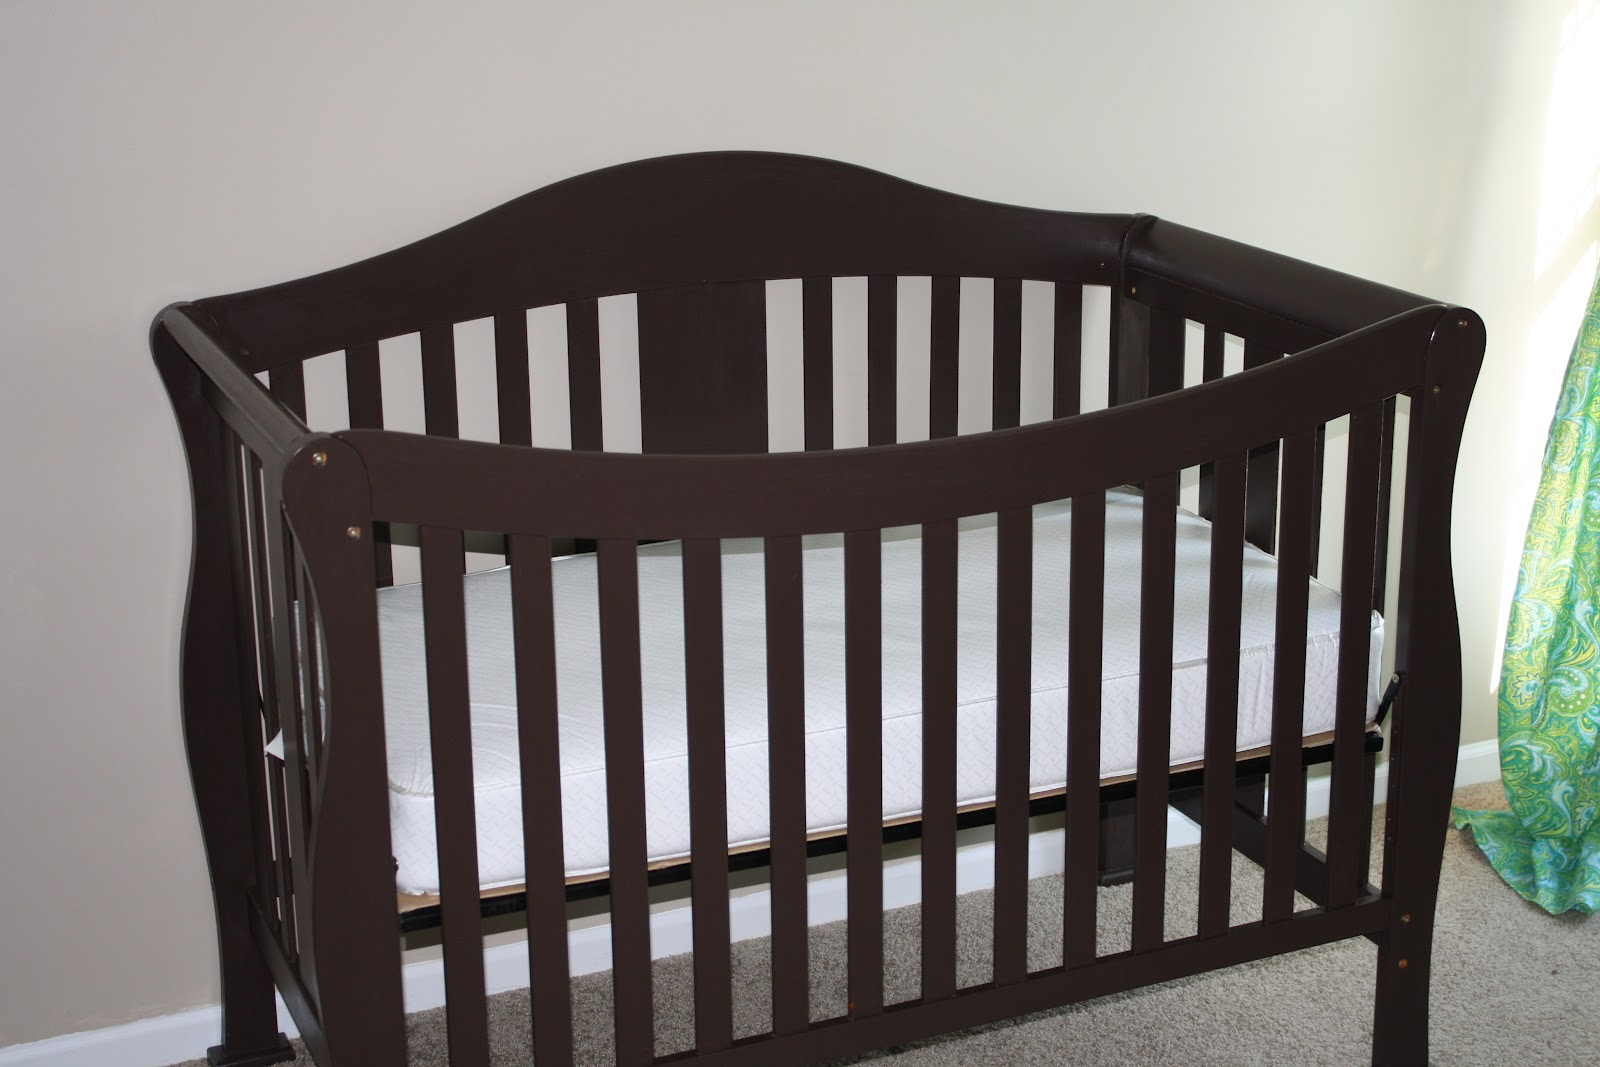 Crib Bumpers Safety 2012 Home Improvement